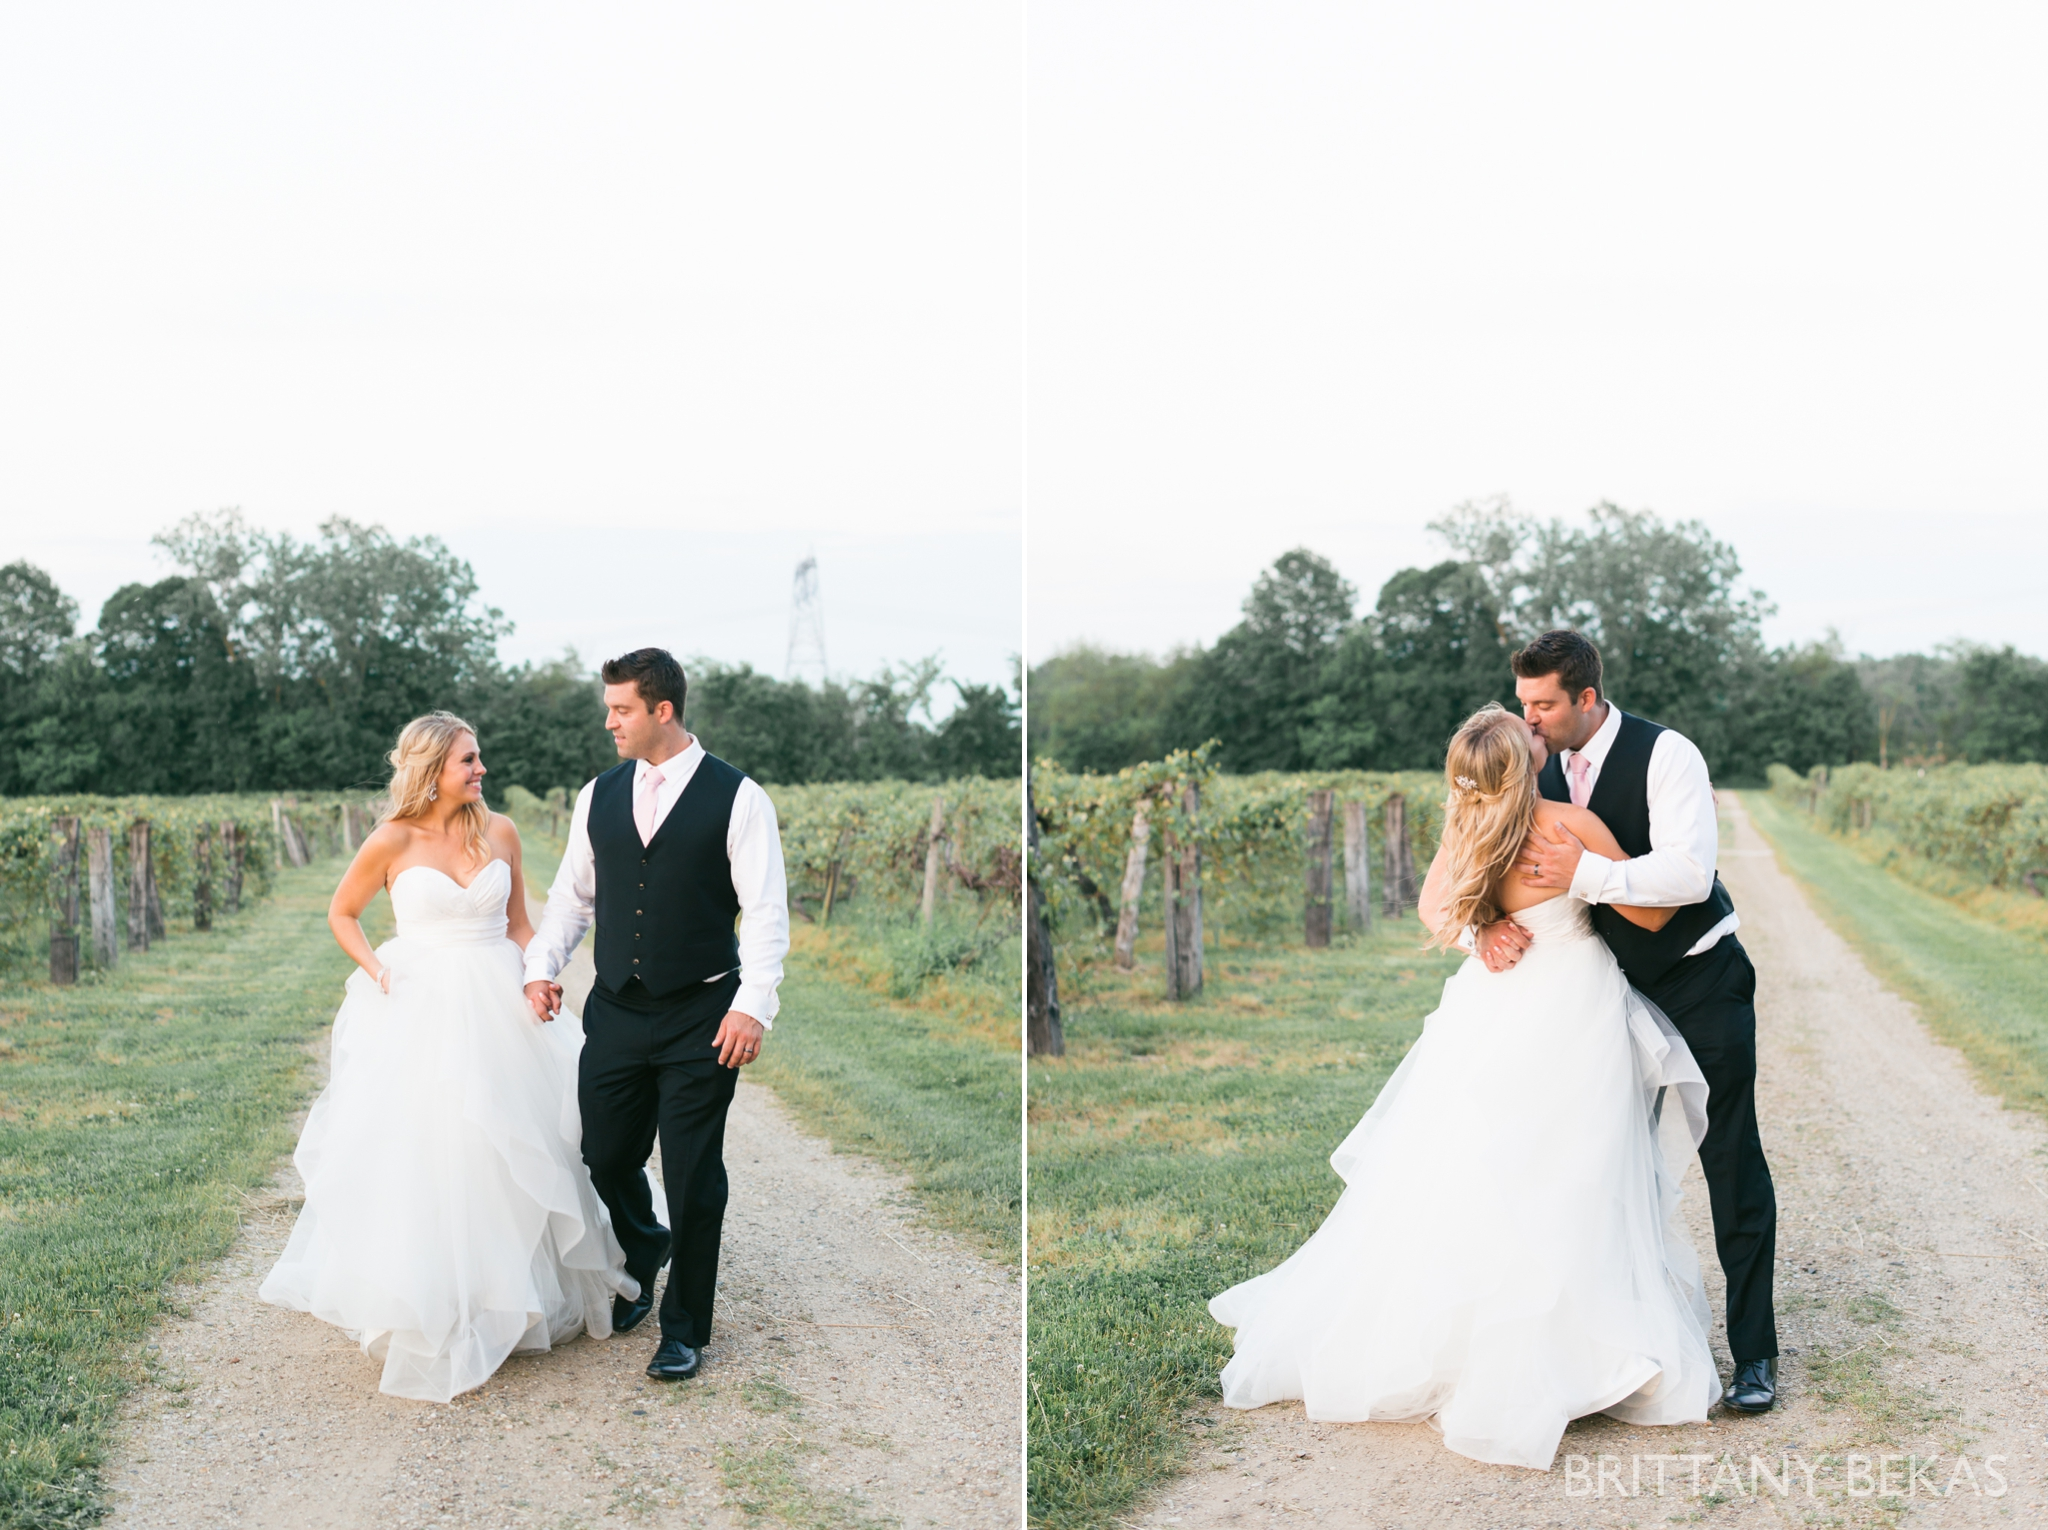 New Buffalo Wedding - Willow Harbor Vineyards Wedding Photos - Brittany Bekas Photography_0060